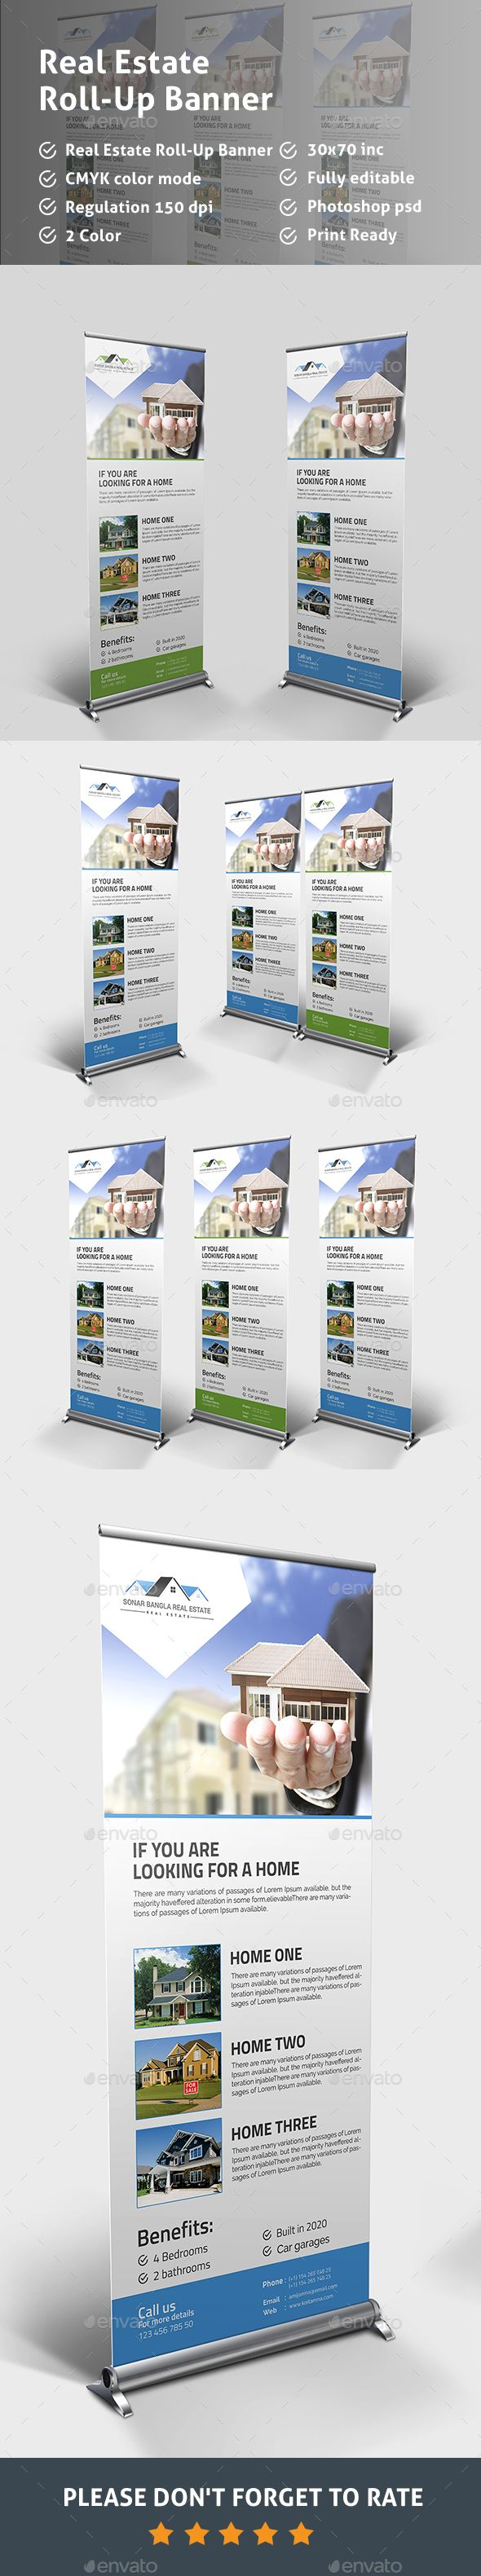 Real Estate RollUp Banner — Photoshop PSD #roll-up banner #banner • Availabl...